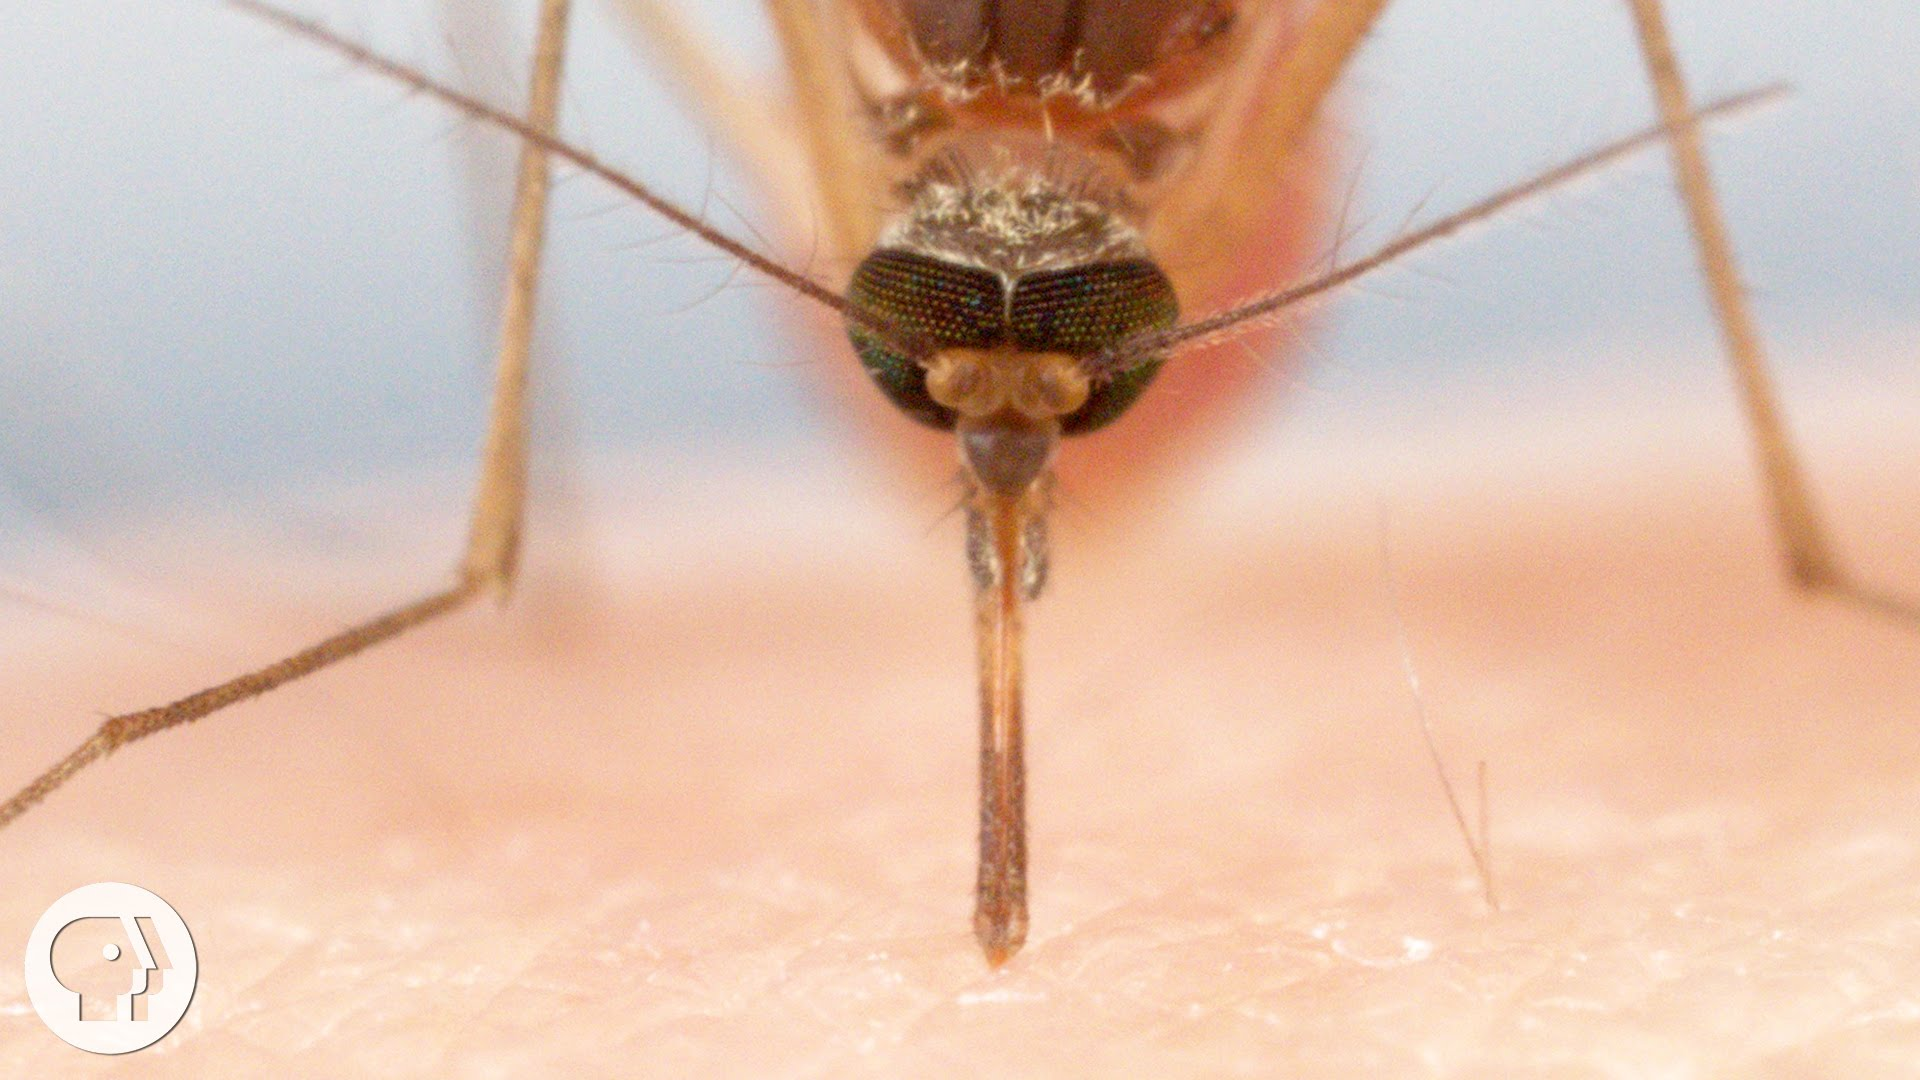 The Terrifying Anatomy of a Mosquito Bite